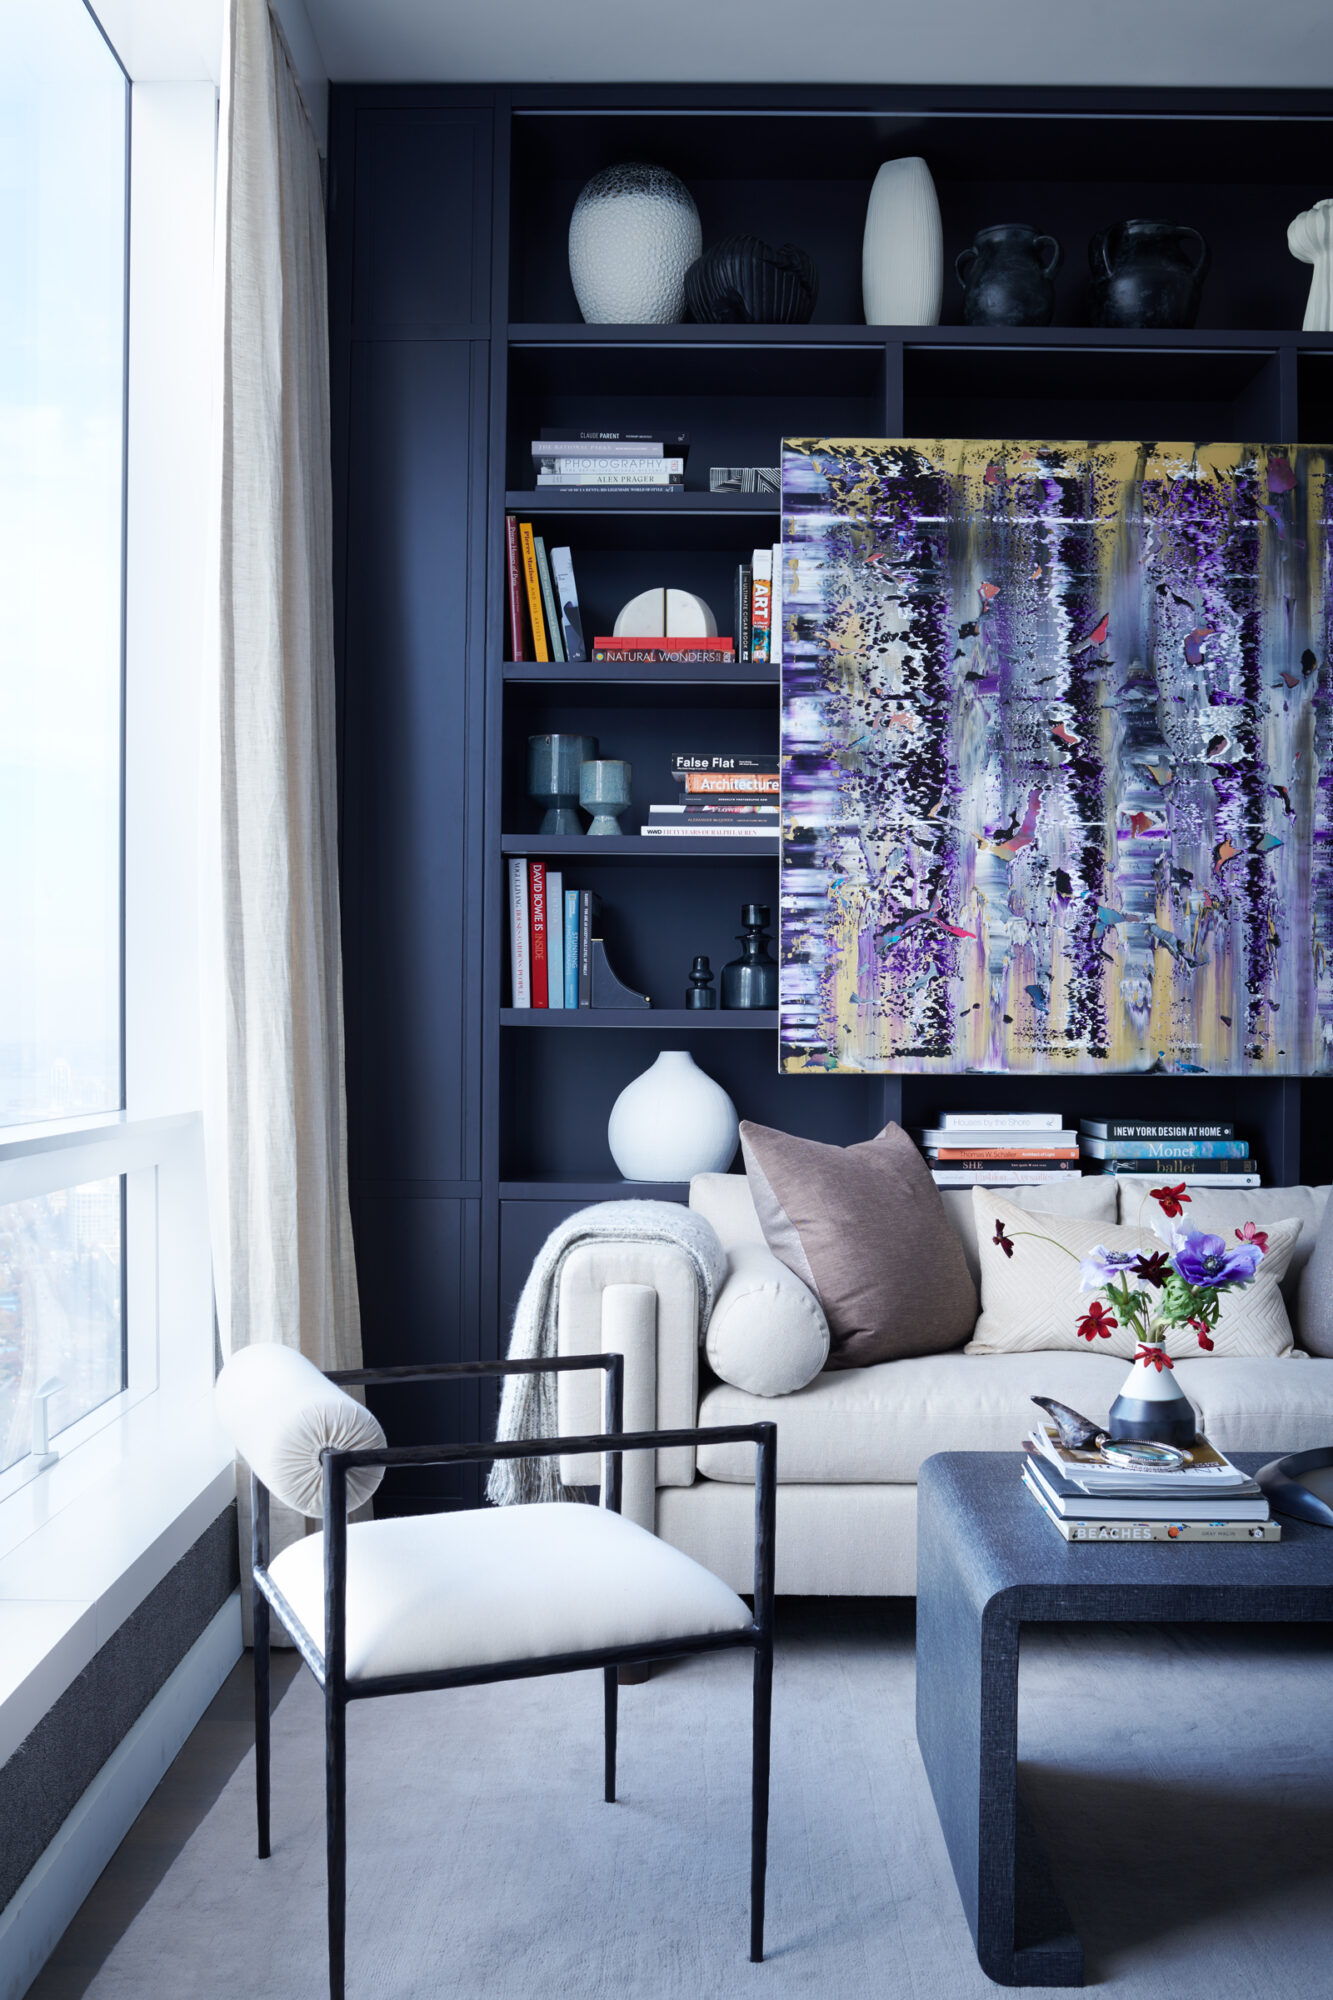 Natural light brightens up a seating area with dark hues